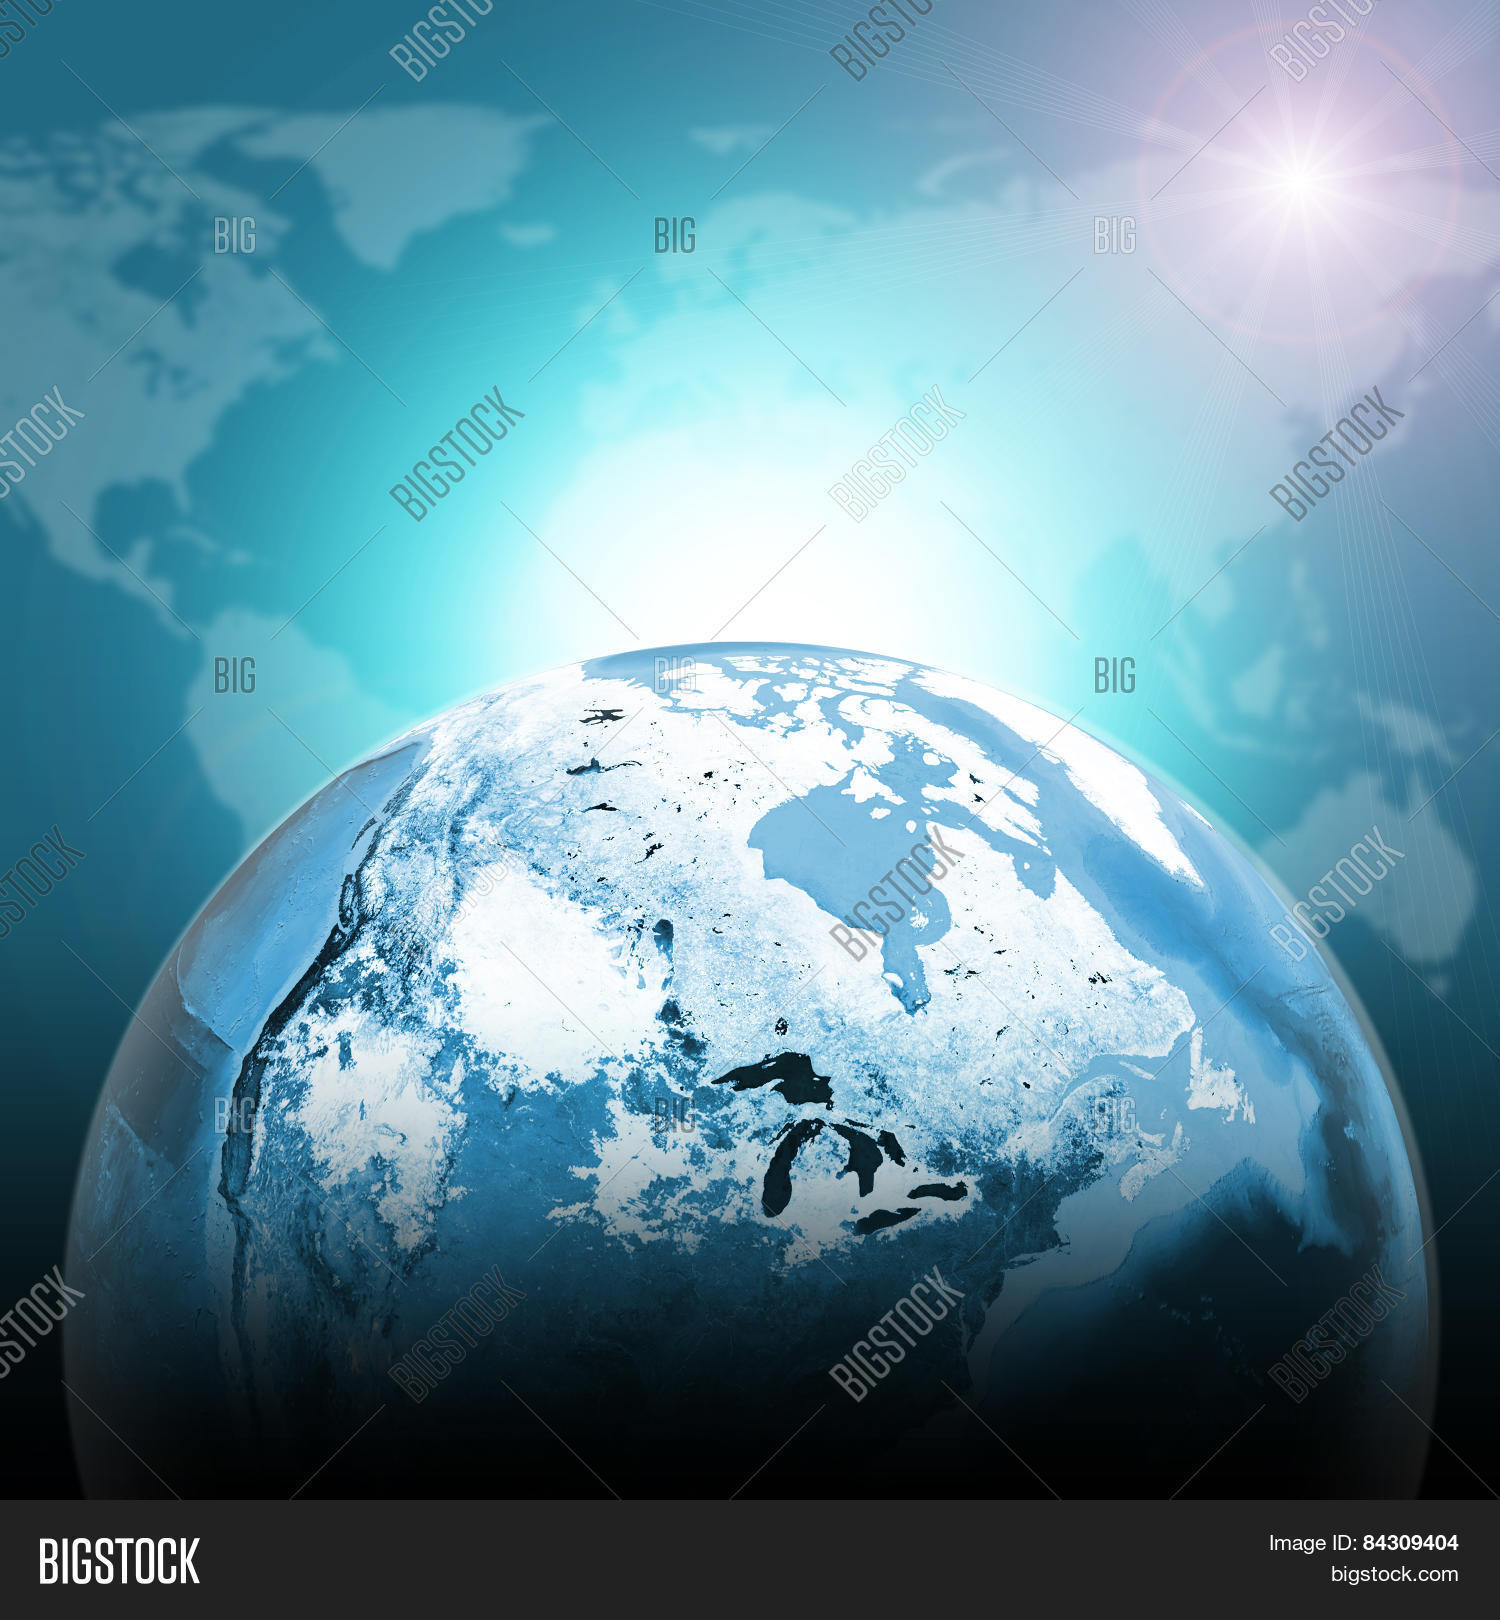 Imagen y foto green half earth prueba gratis bigstock green half earth globe with continents transparent world map on dark background gumiabroncs Choice Image